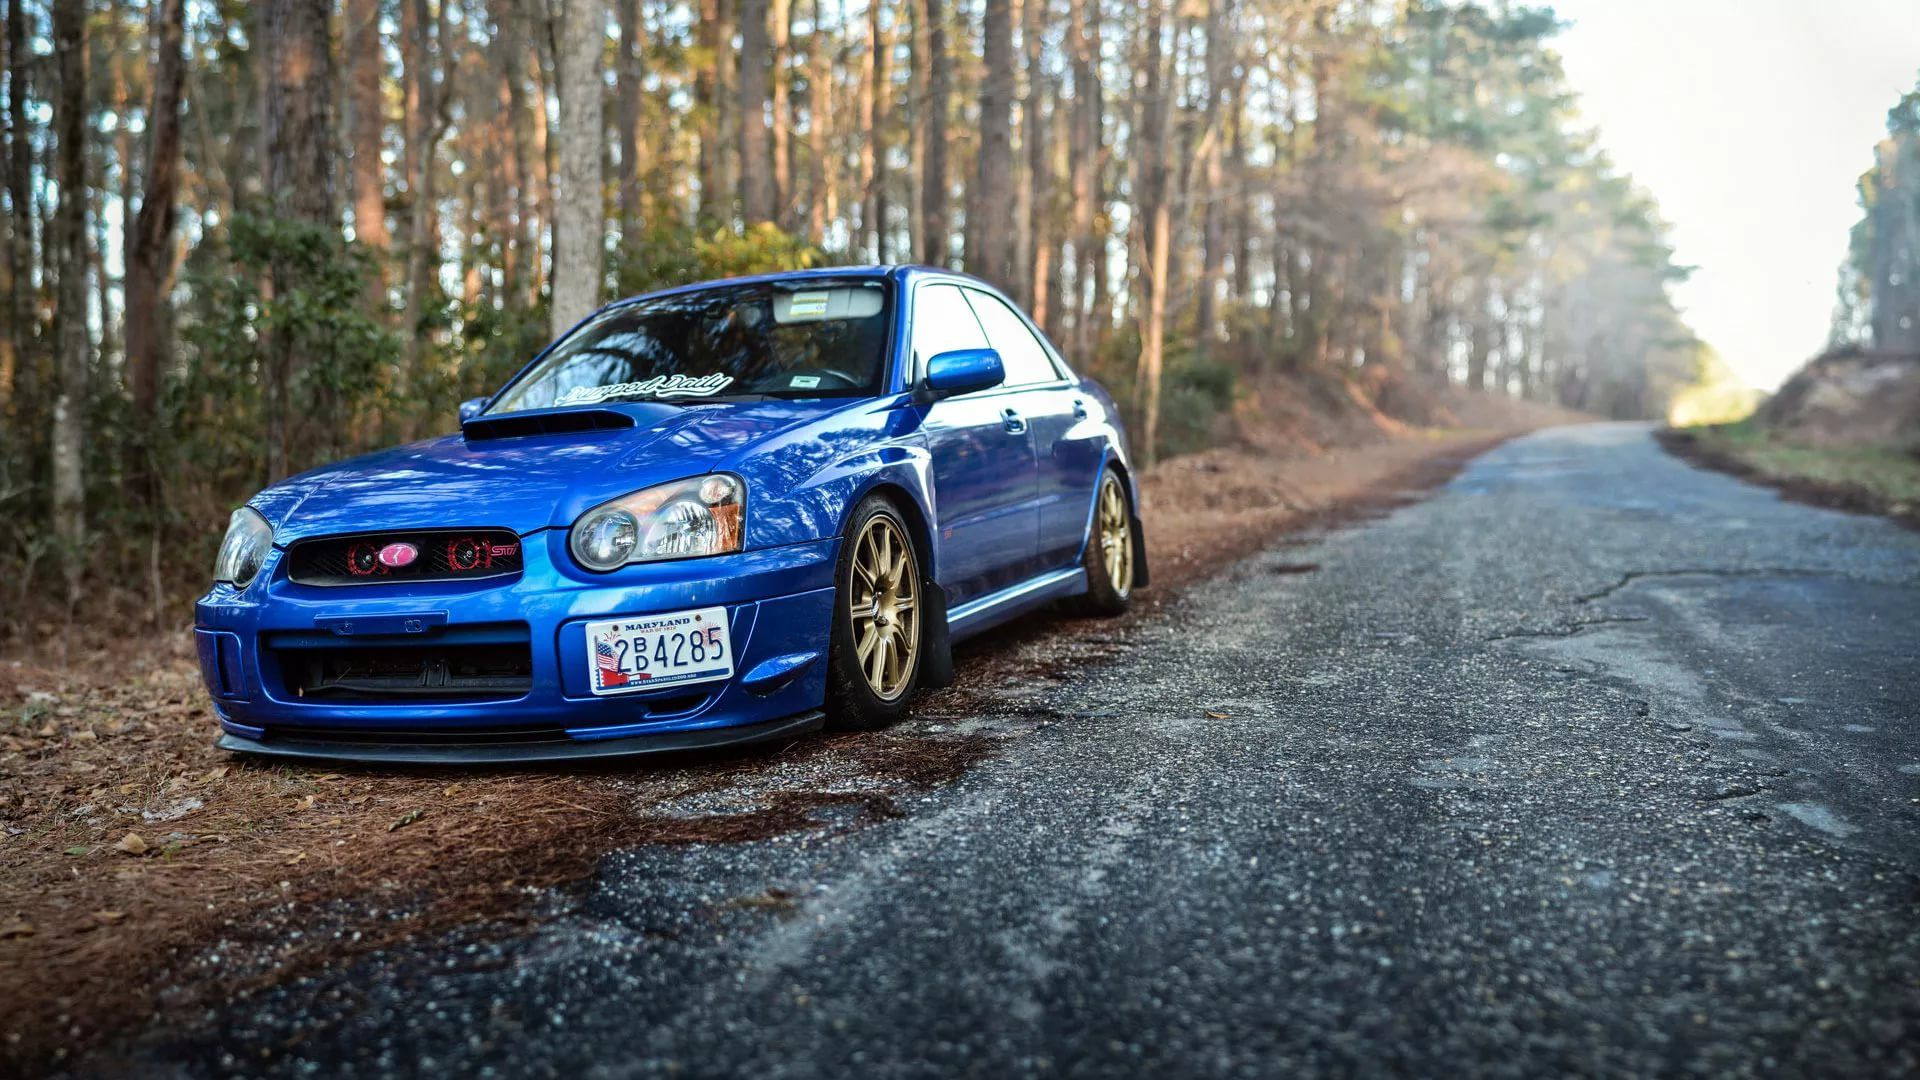 Subaru WRX Free Wallpaper